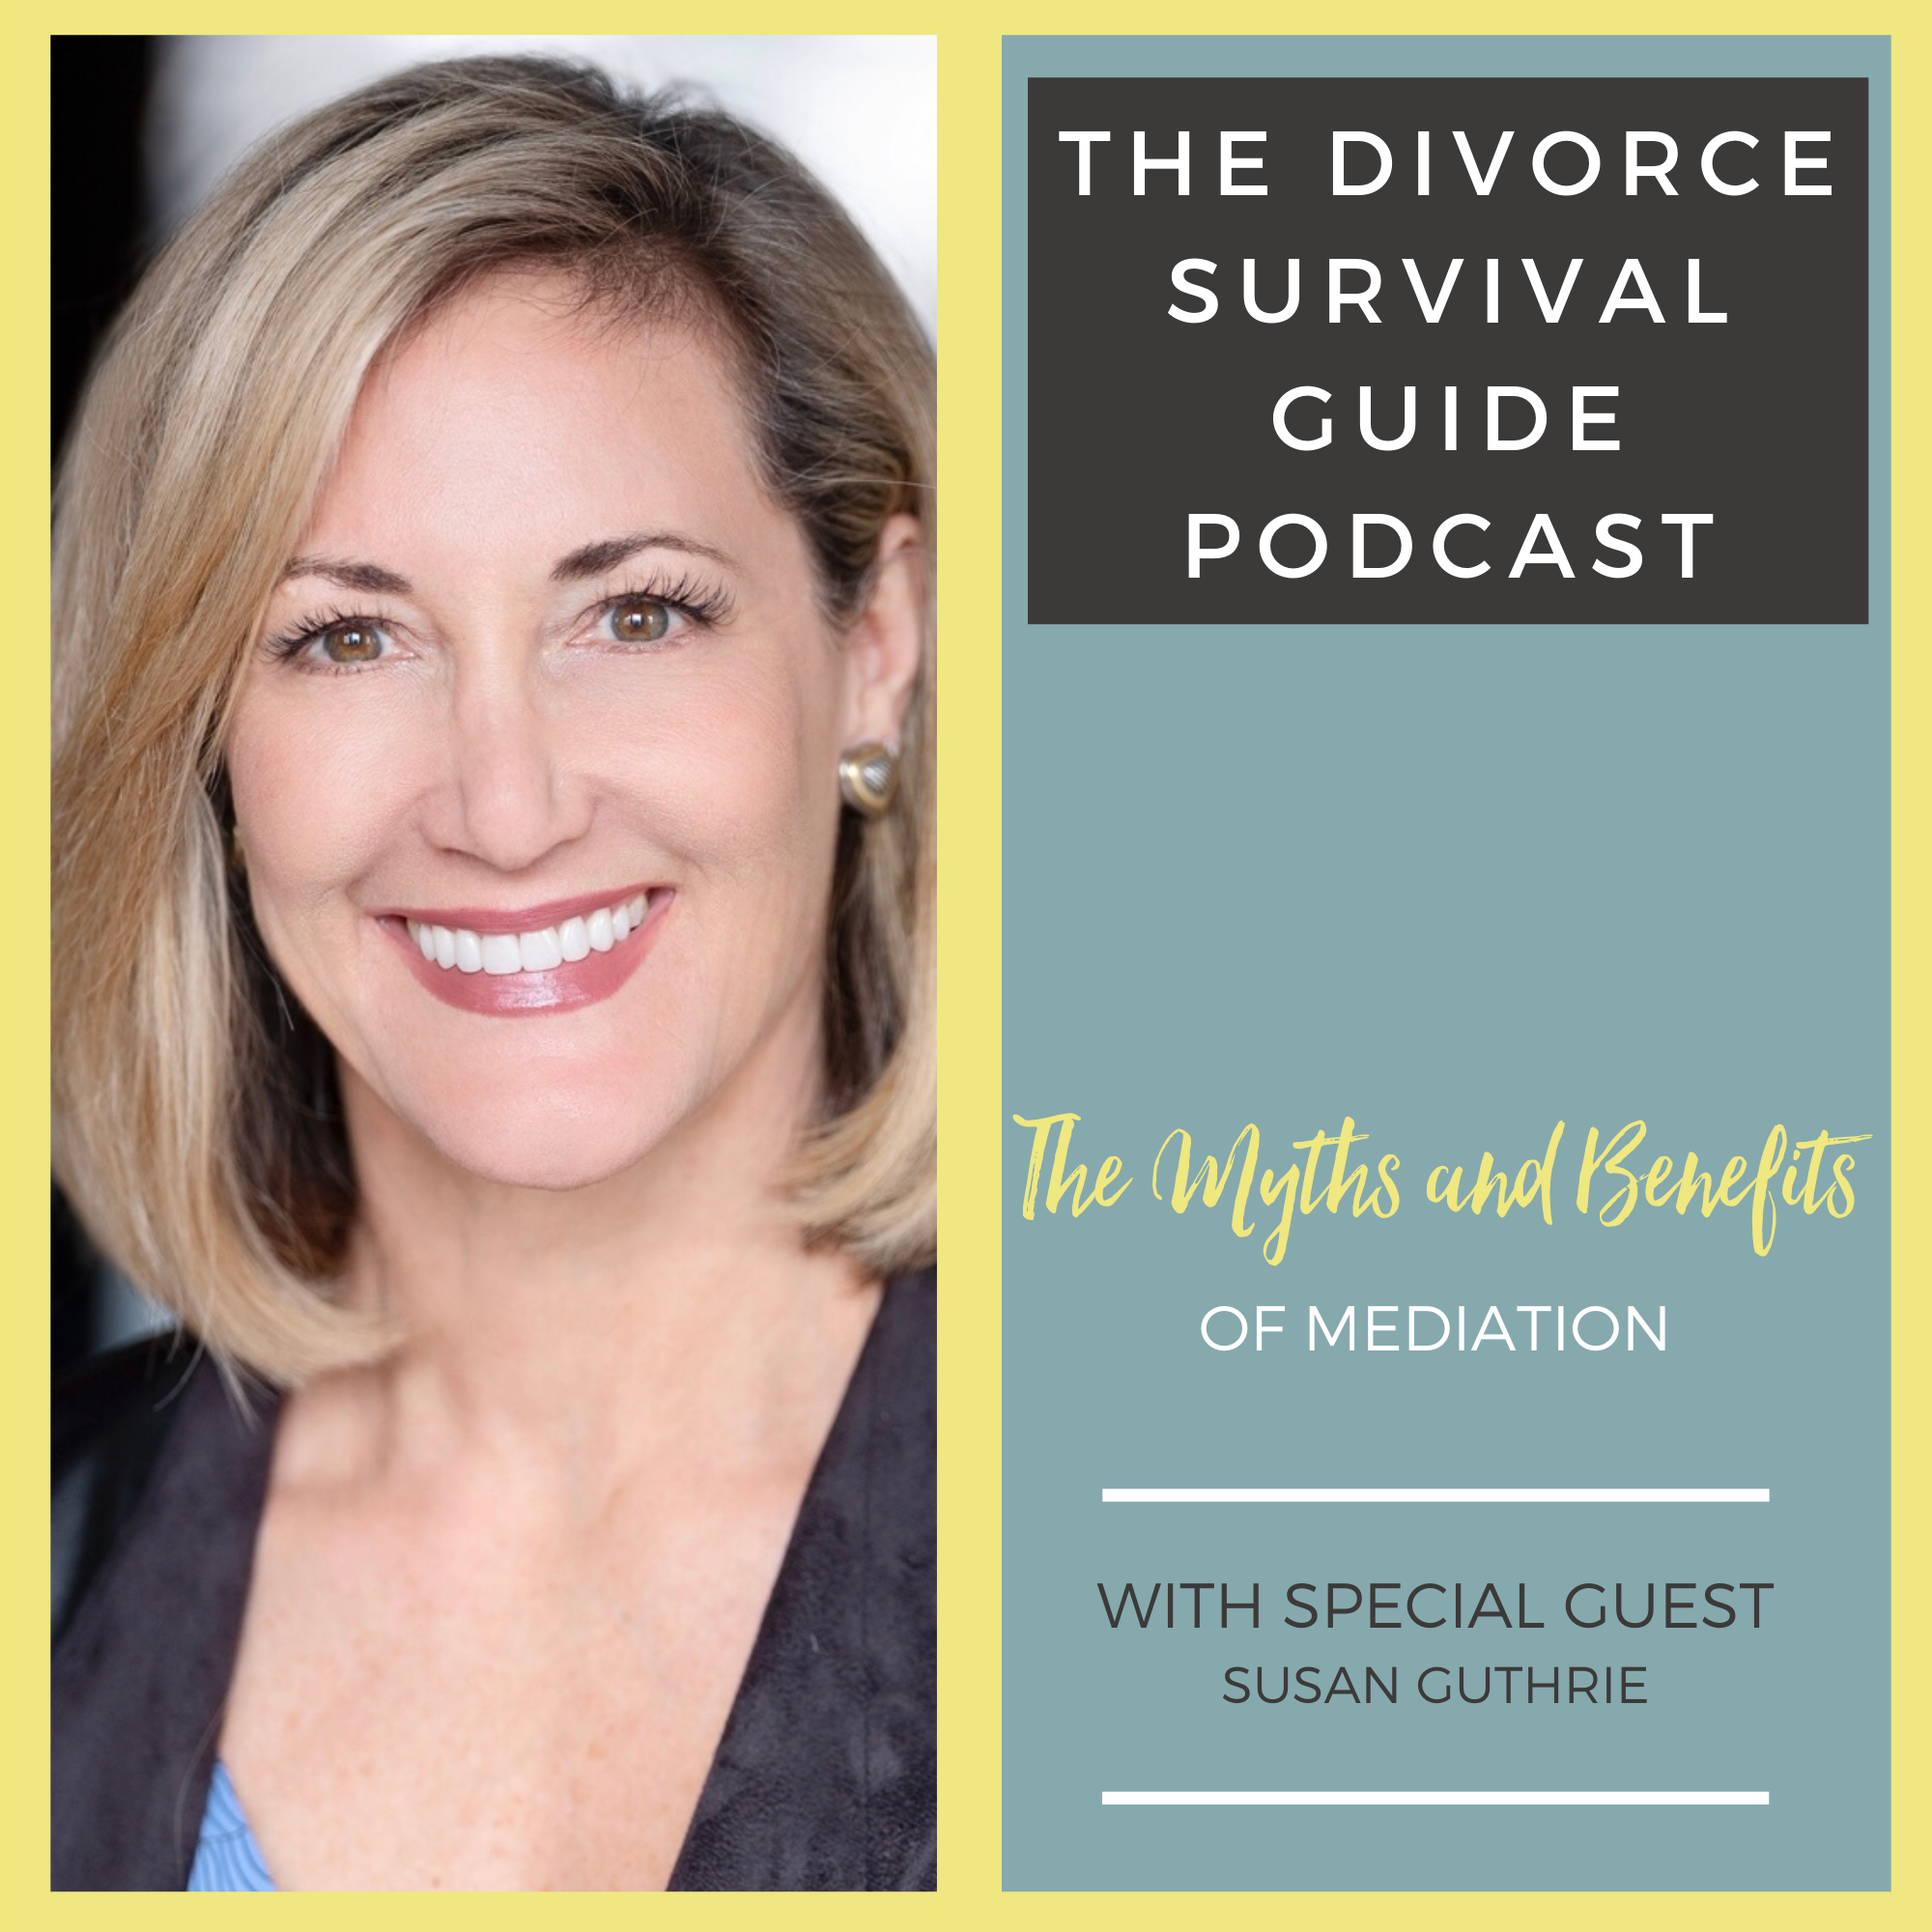 The Divorce Survival Guide Podcast - The Myths and Benefits of Mediation with Susan Guthrie